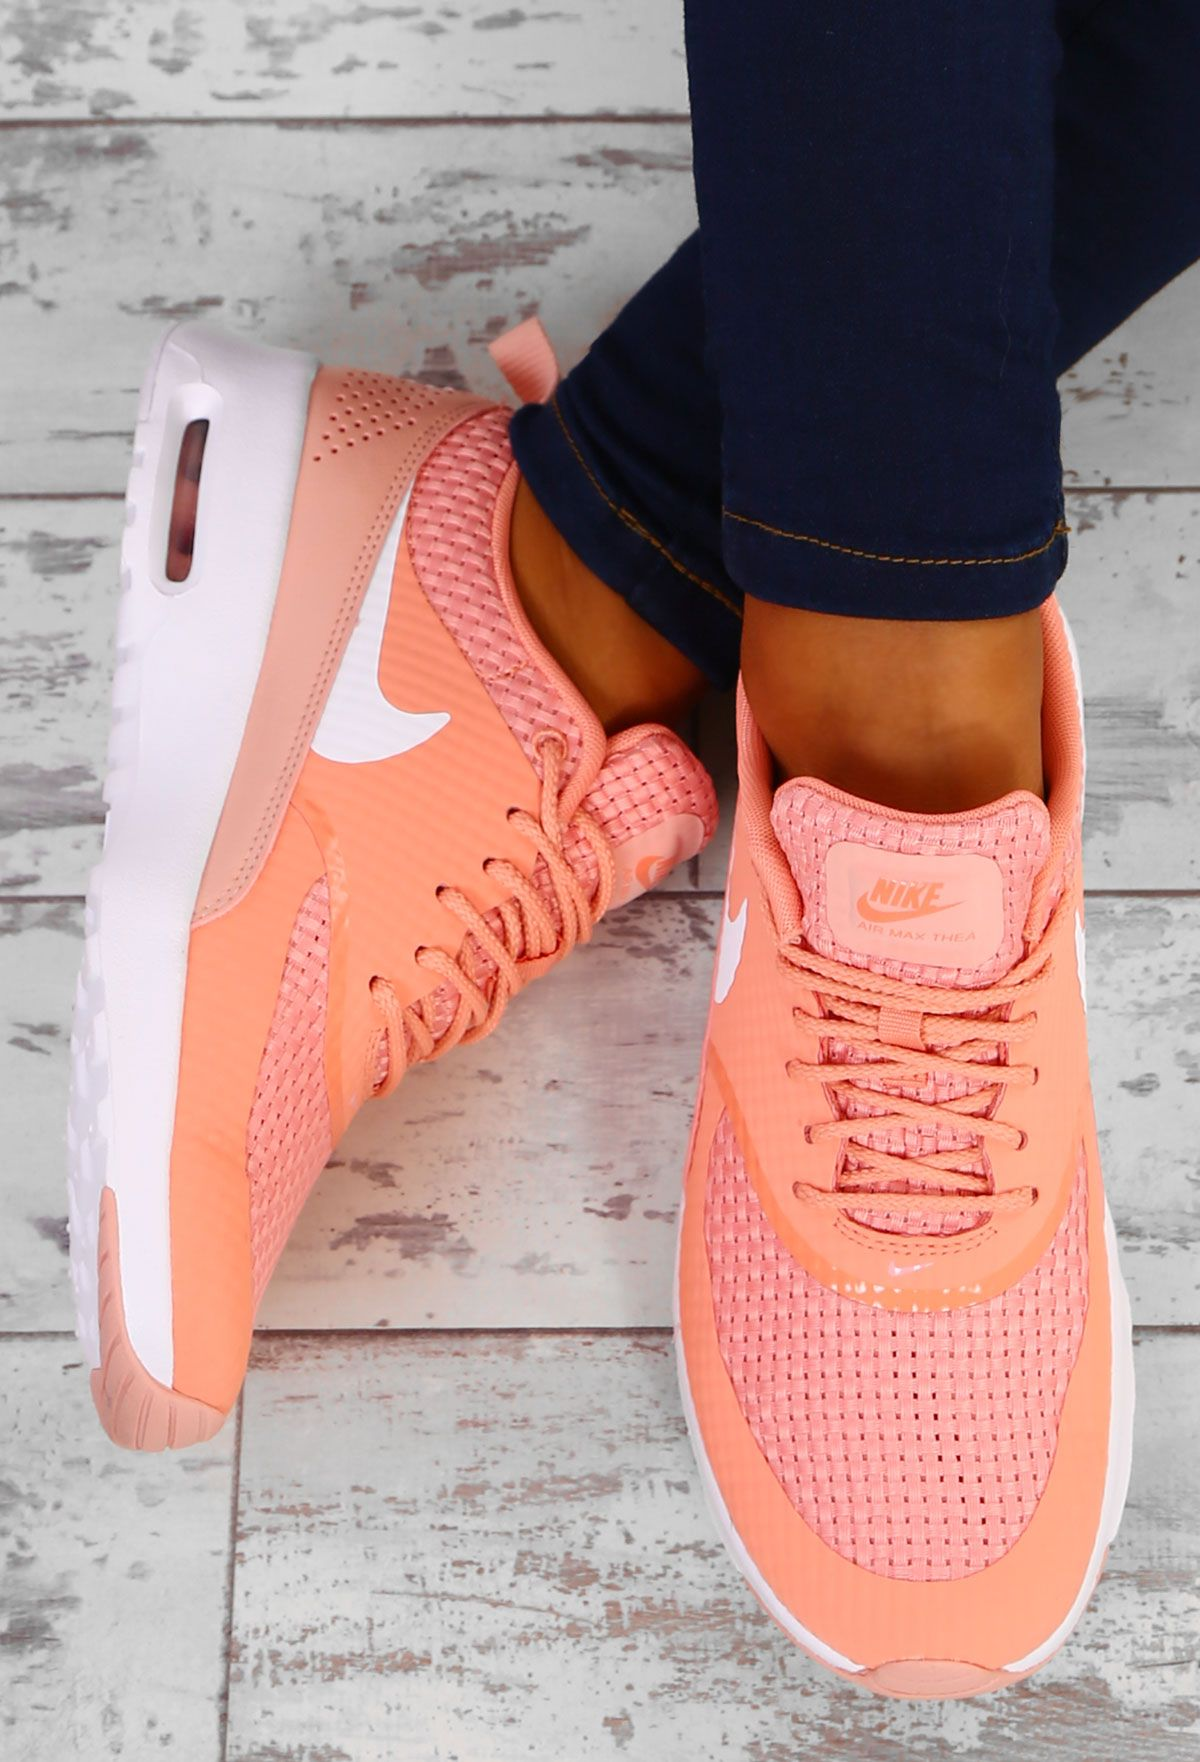 Nike Air Max Thea Crimson Bliss Trainers UK 3 | Nike air